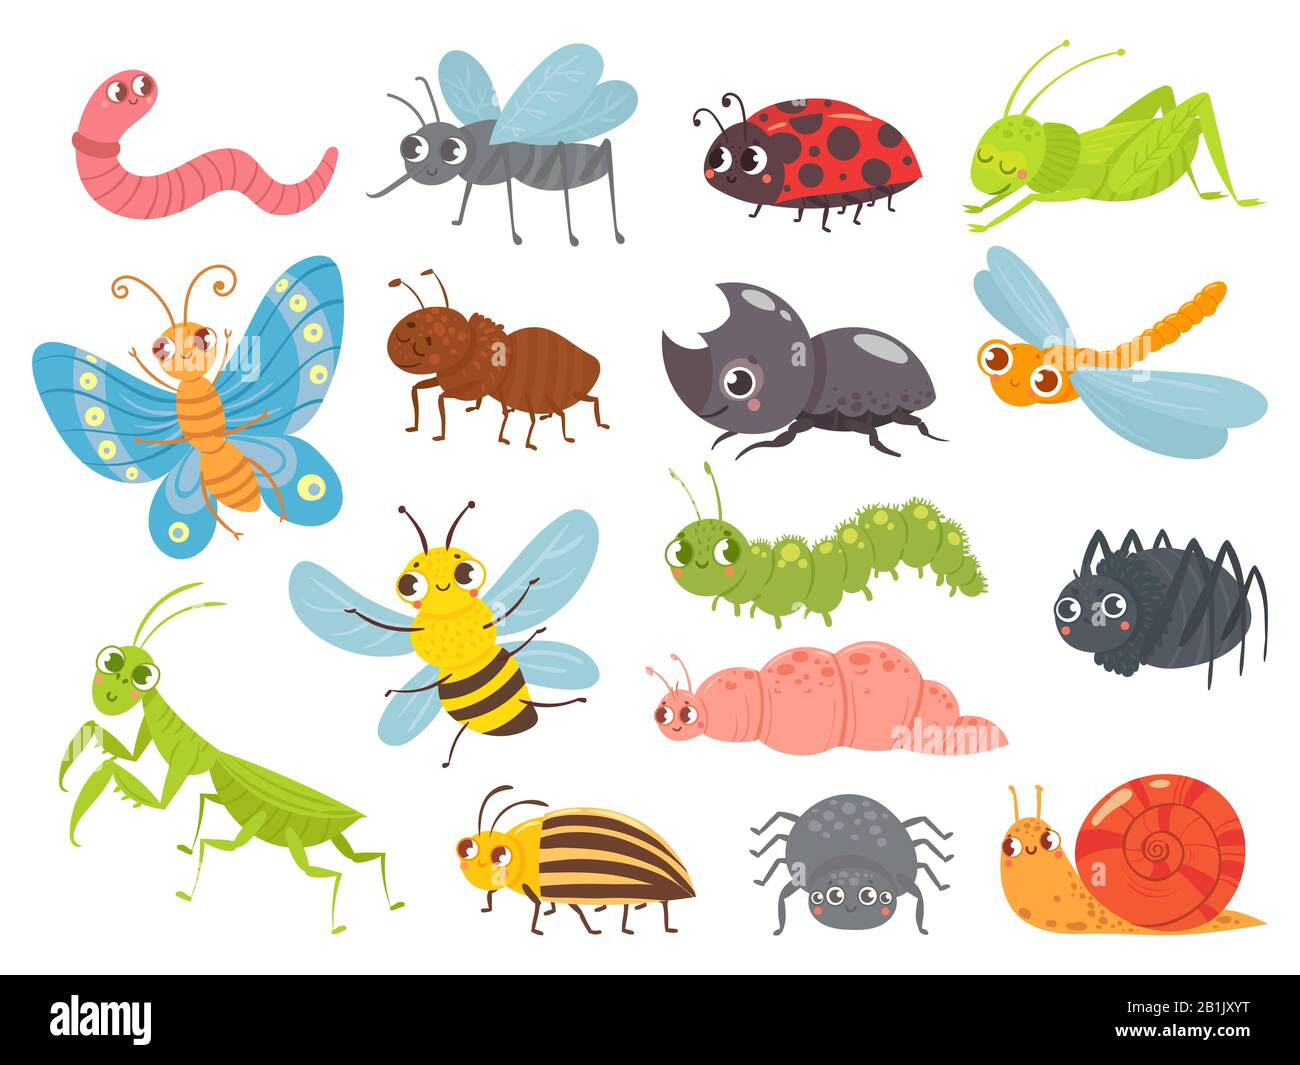 Cute Cartoon Insects Funny Caterpillar And Butterfly Children Bugs Mosquito And Spider Green Grasshopper Ant And Ladybug Vector Illustration Set Stock Vector Image Art Alamy